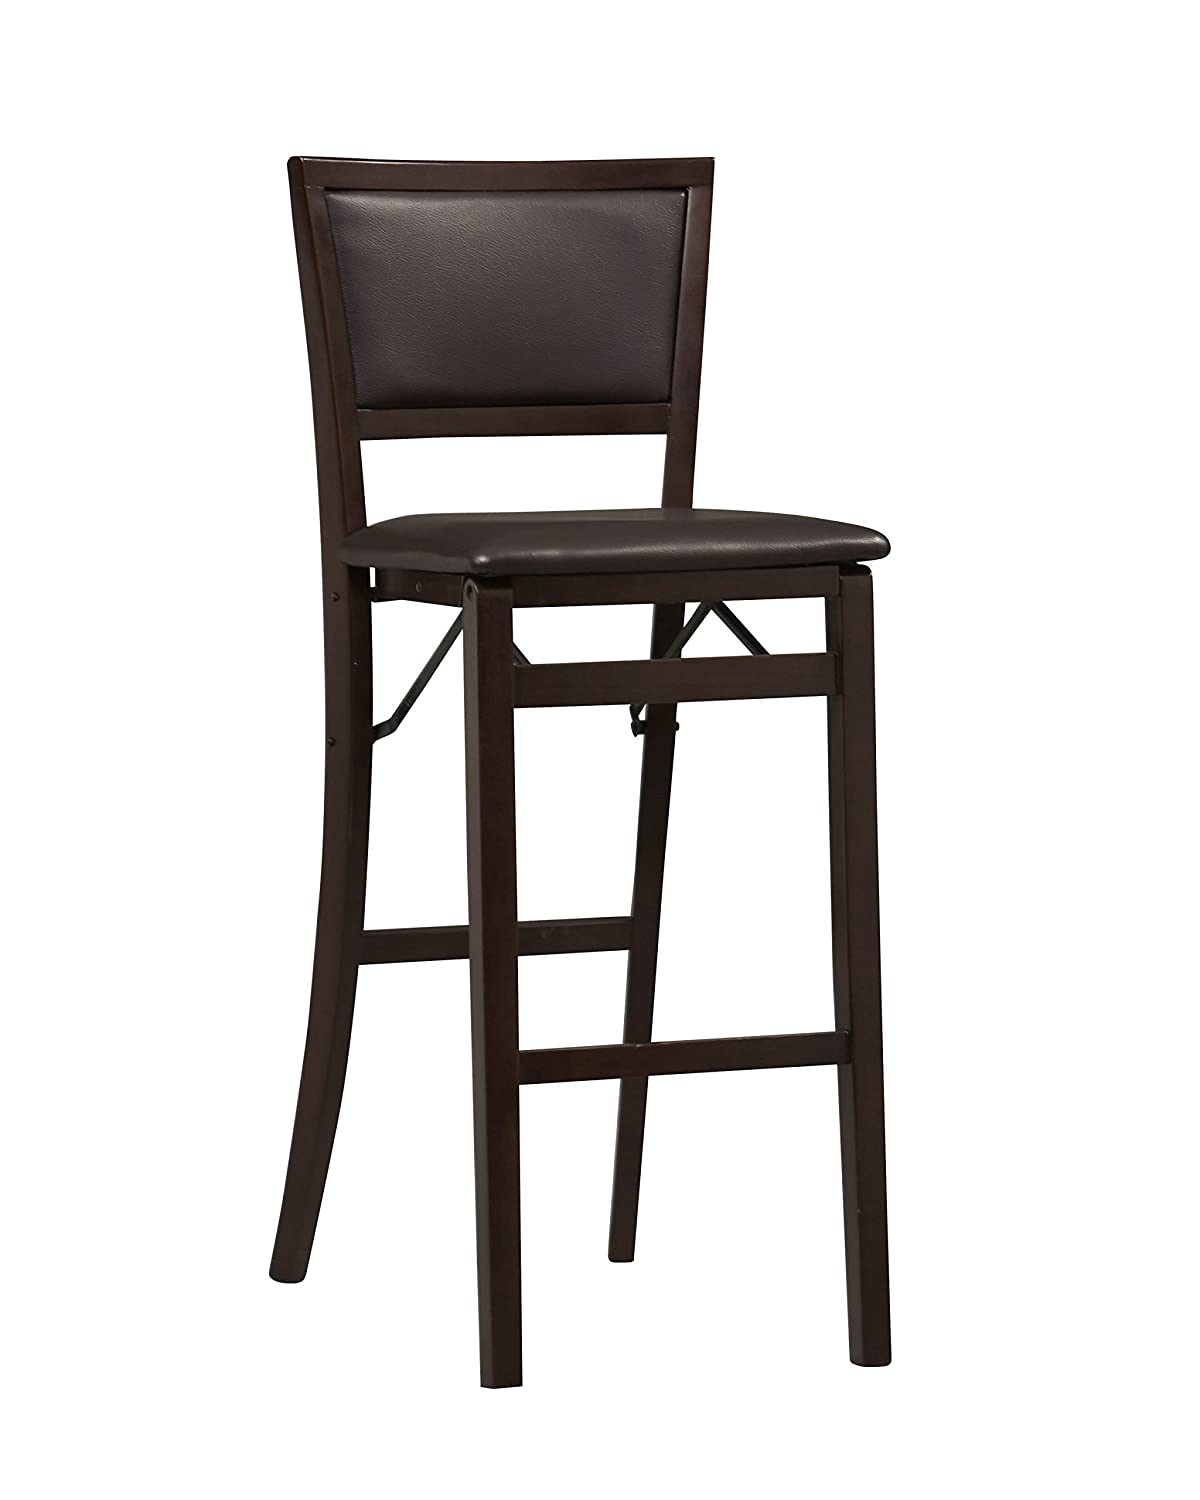 Counter Height Folding Chairs Jaup